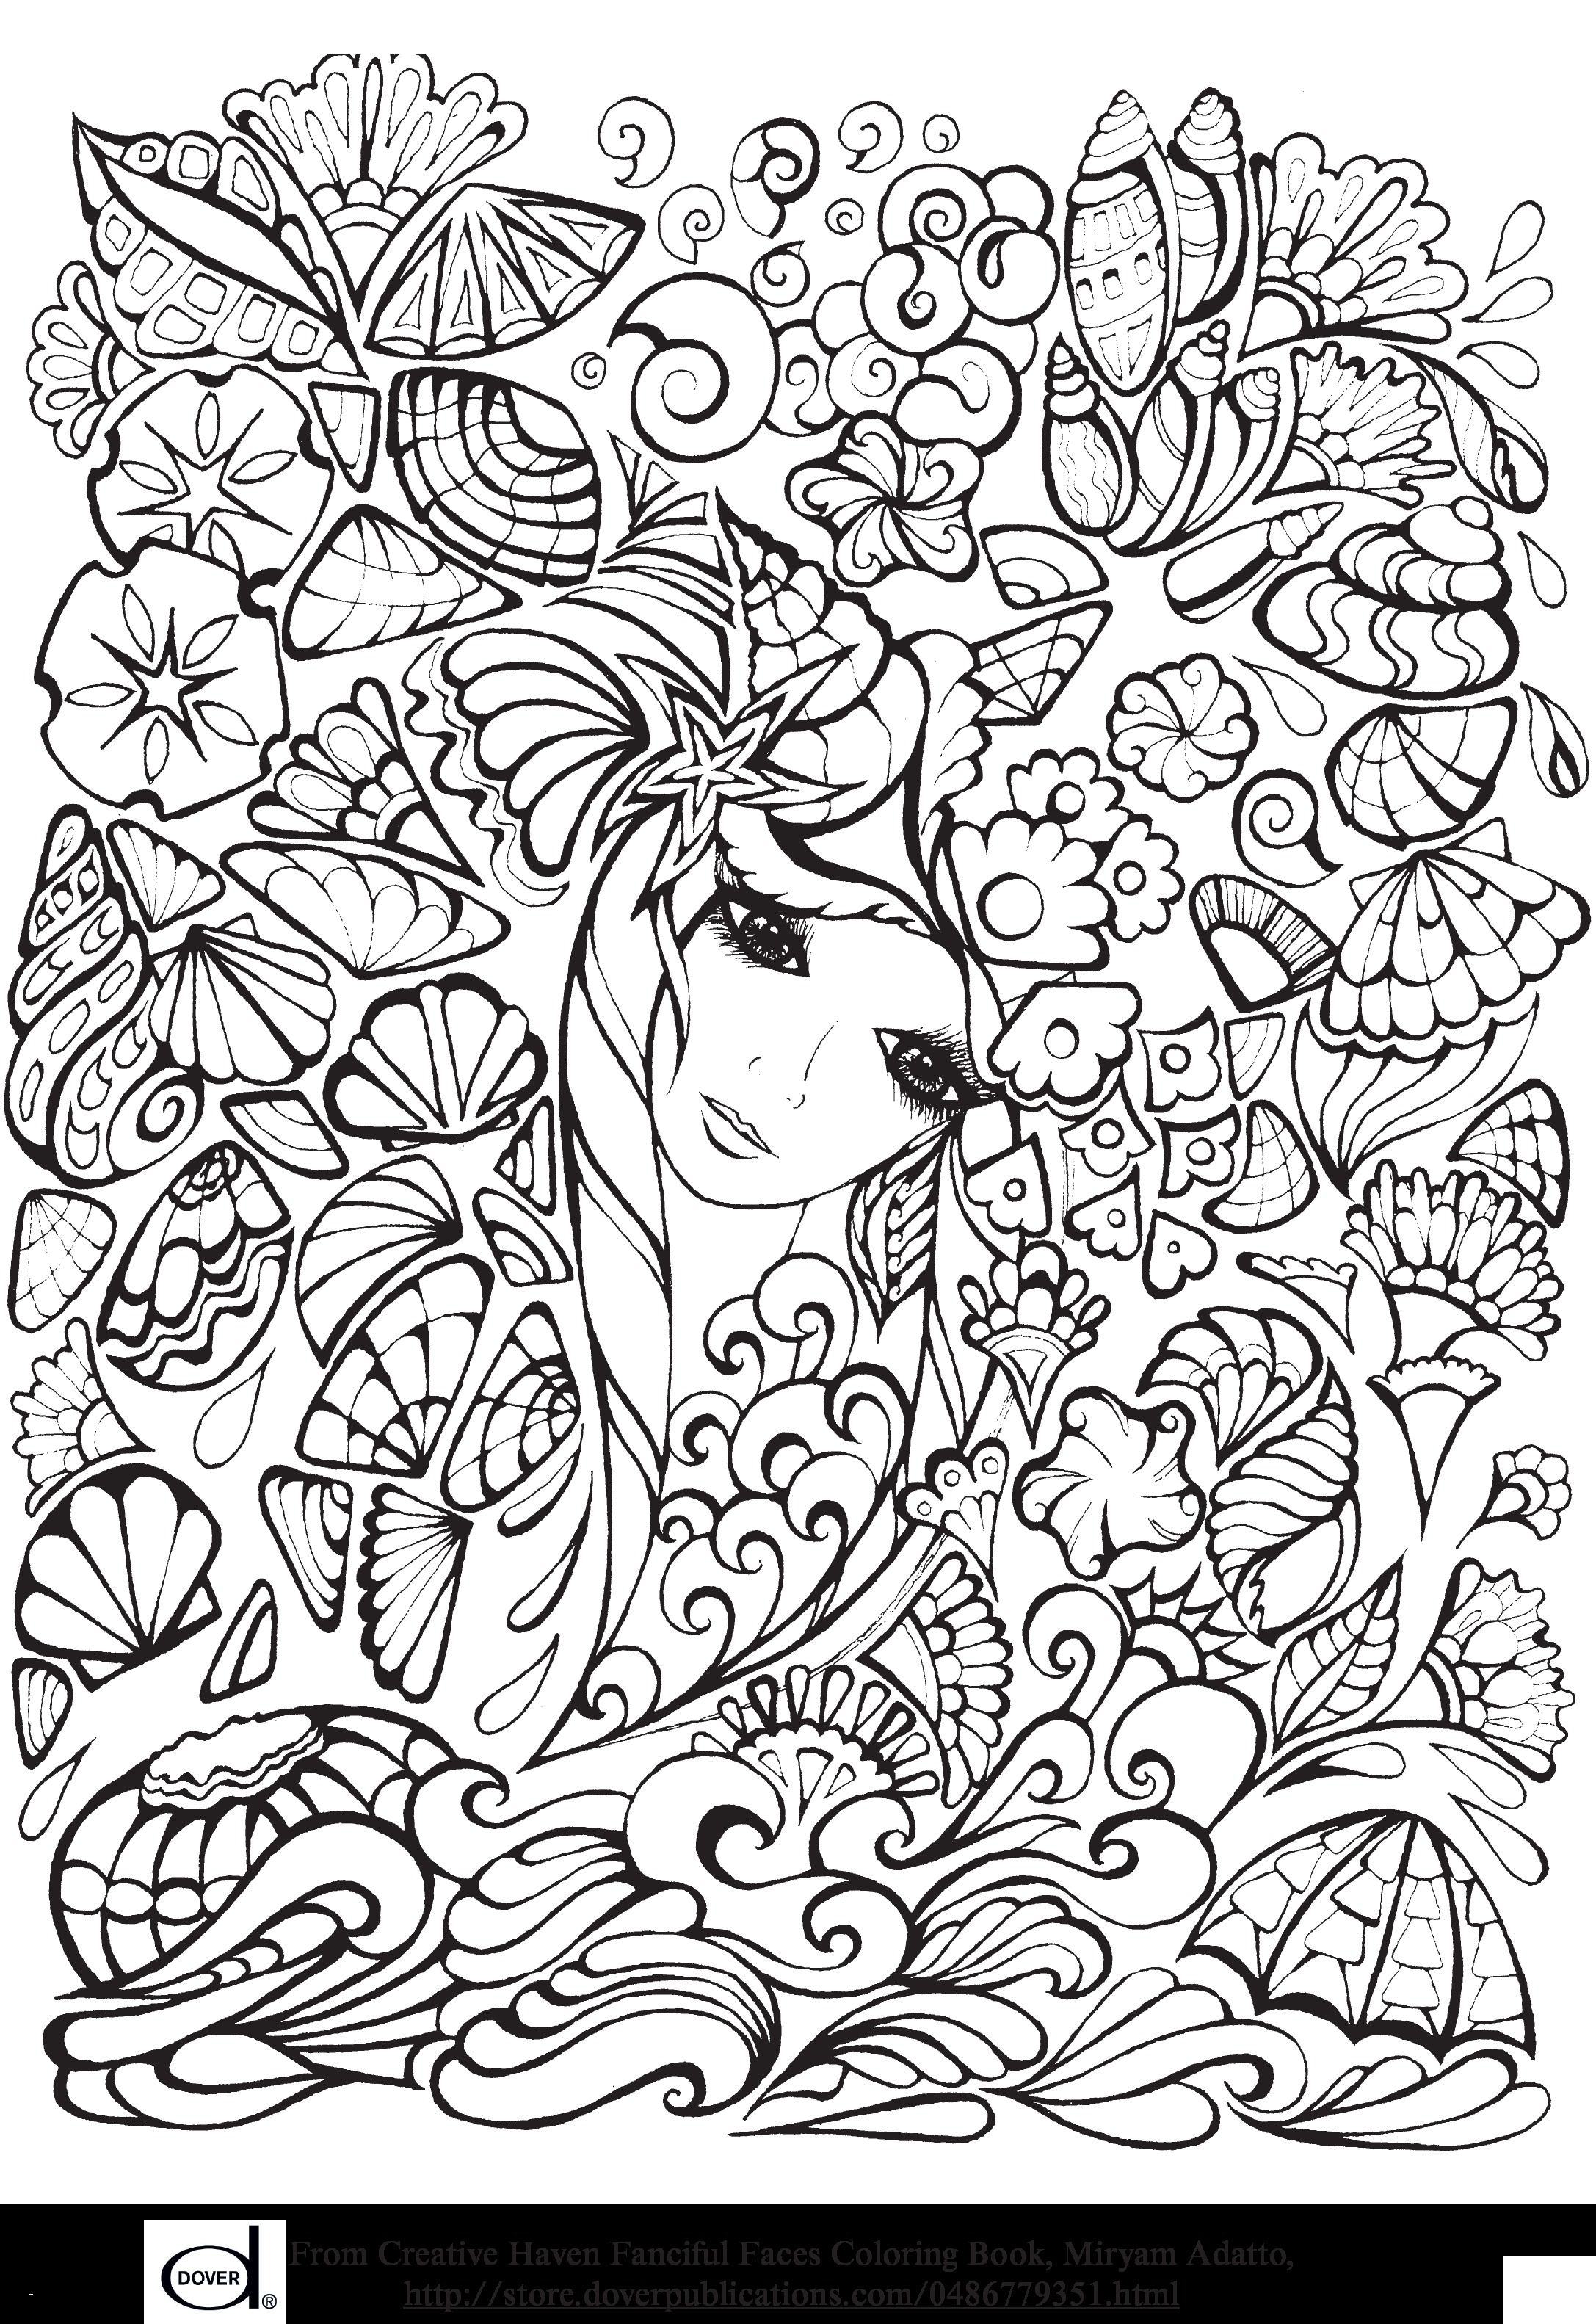 78 Best Of Image Of Terraria Coloring Pages Seni Rupa Stensil Gambar